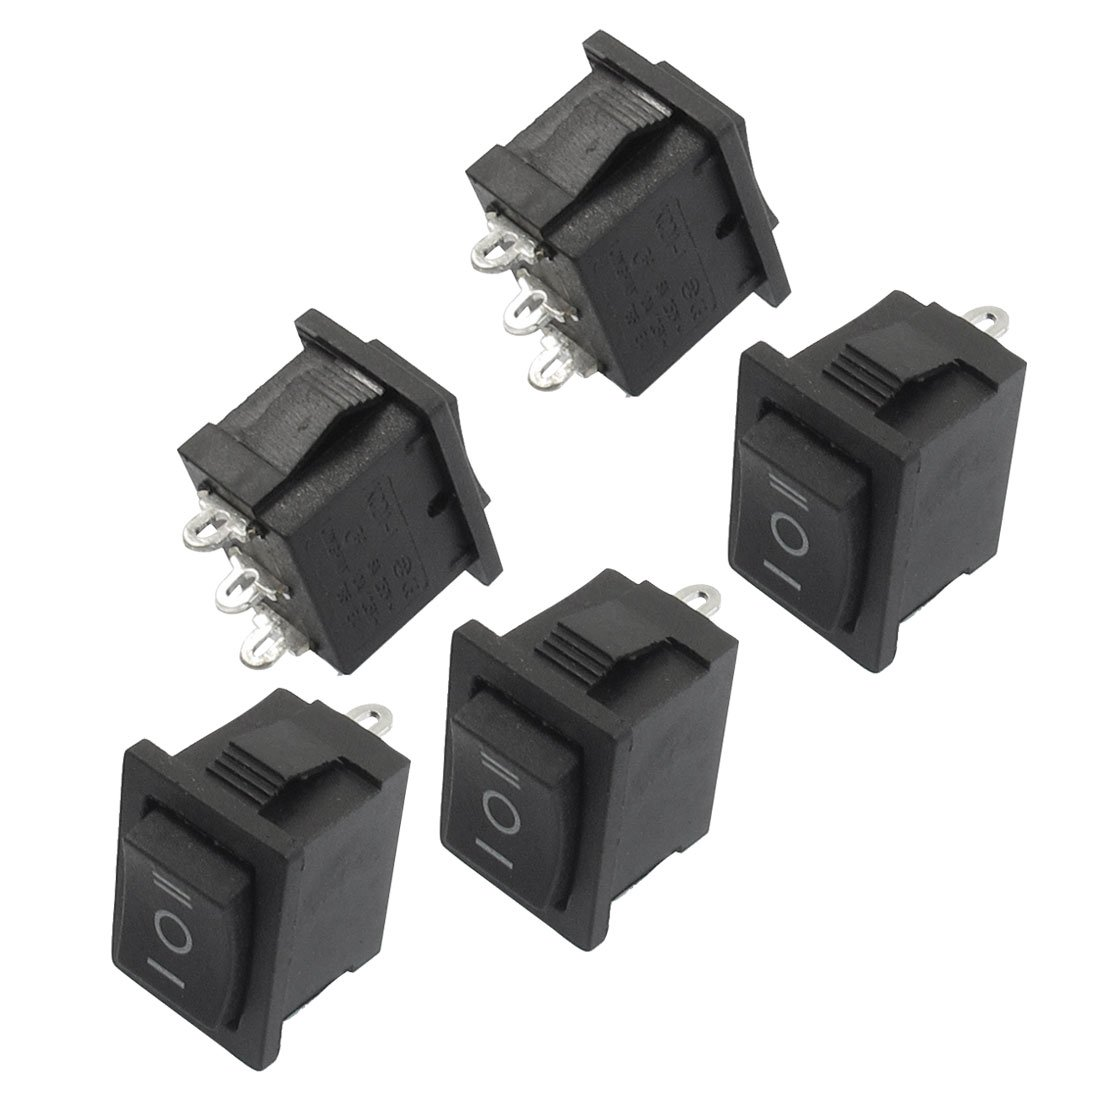 Promotion! 5 pcs SPDT On/Off/On Mini Black 3 Pin Rocker Switch AC 6A/250V 10A/125V yellow led on off rocker switch w terminal protector set for electric appliances 2 pcs